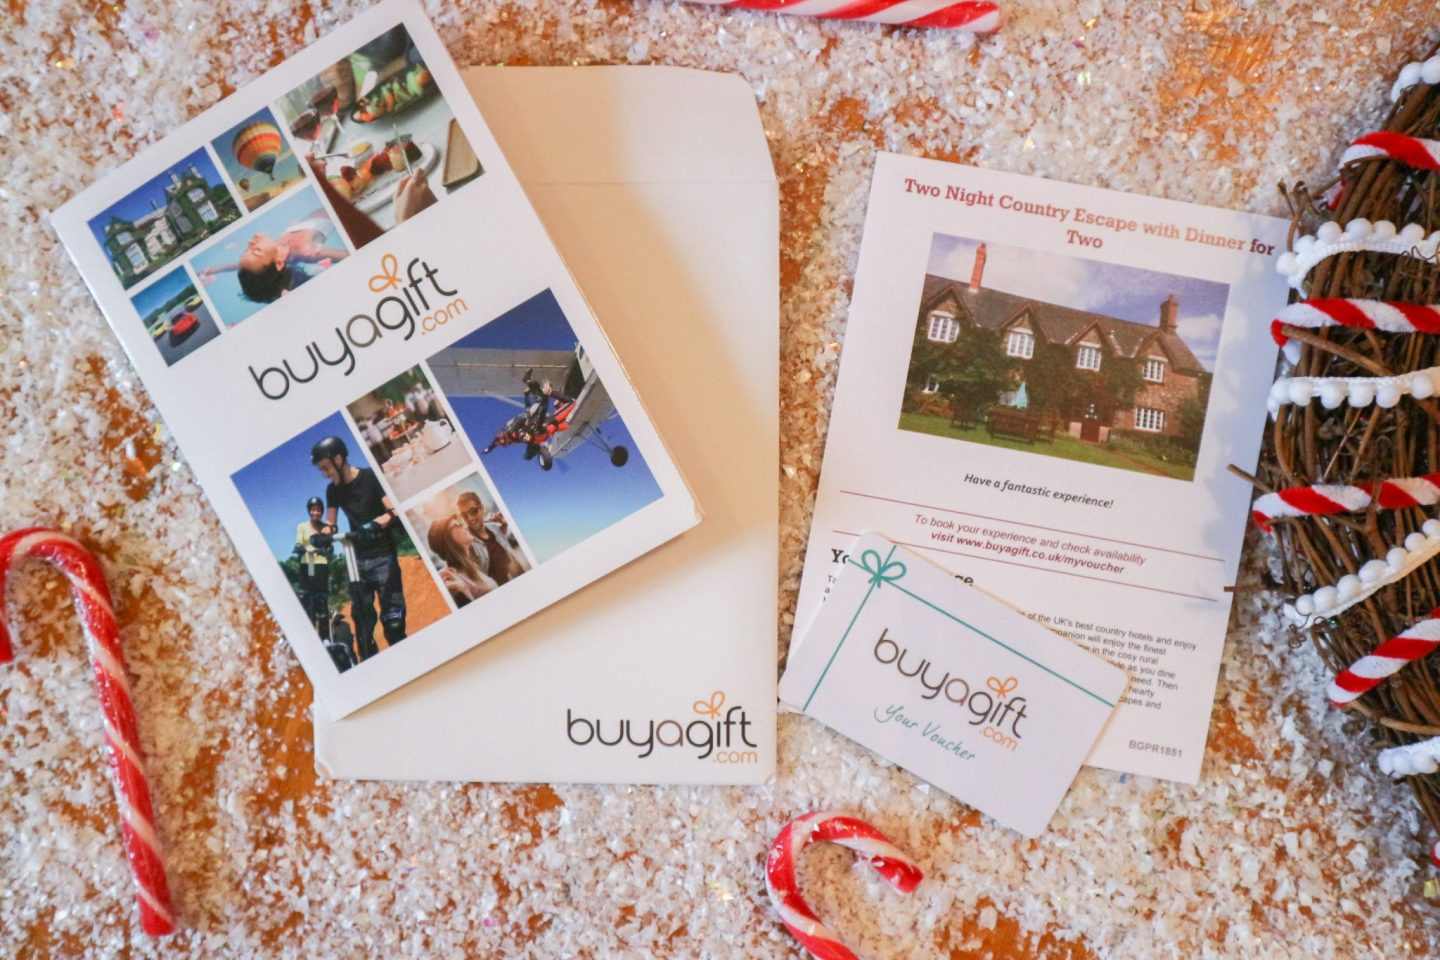 buyagift 2 Night Country Escape with Dinner for 2